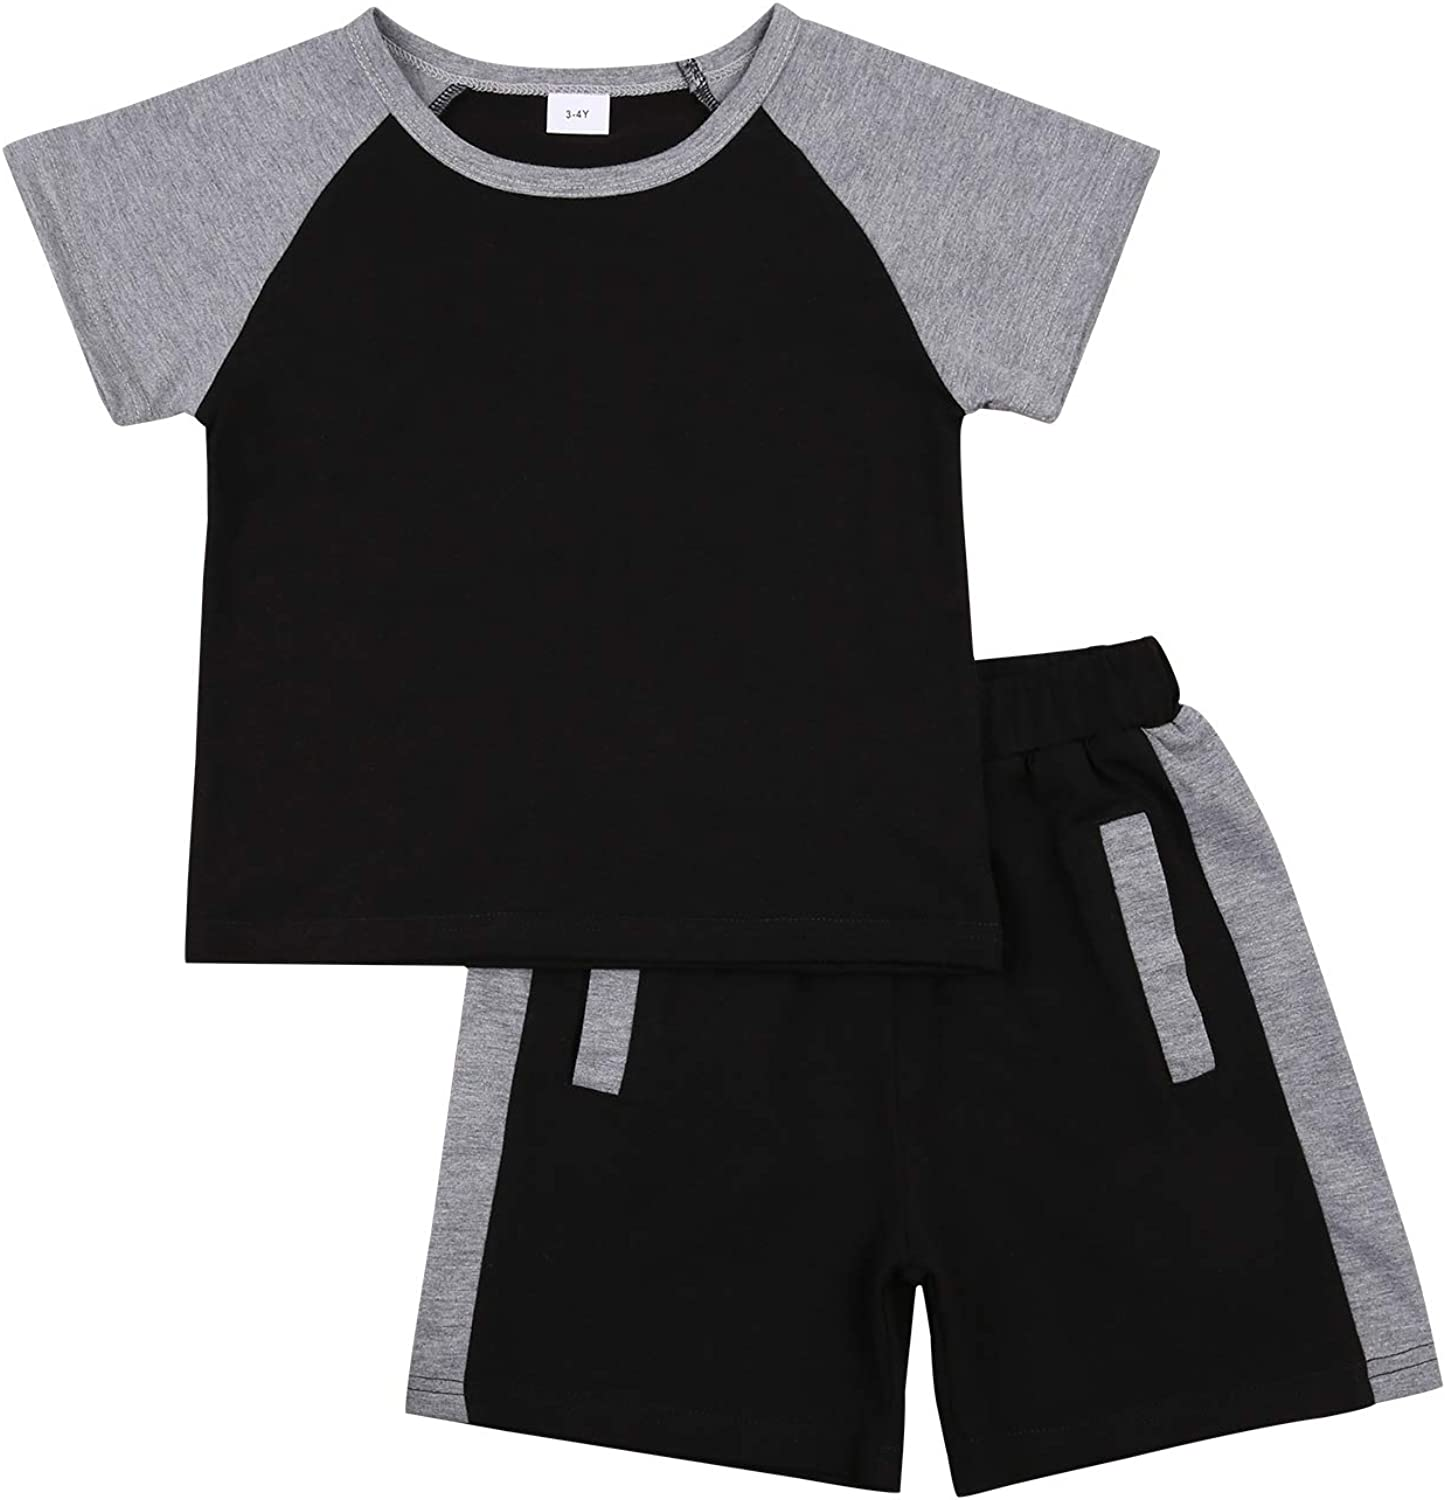 Toddler Baby Boy Summer Clothes Short Sleeve T Shirt Top Shorts Sweatsuit Pants Tracksuit Outfits Set